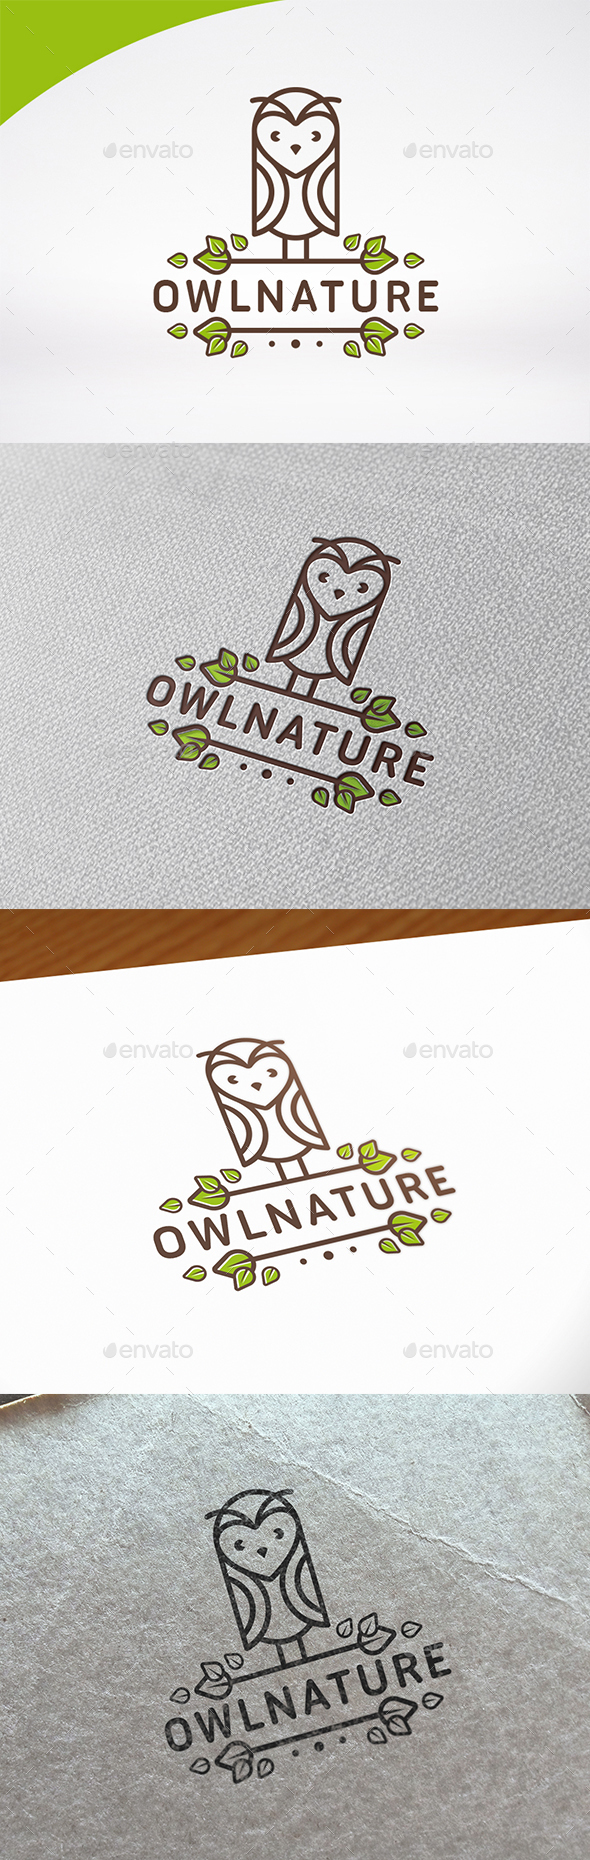 Owl Nature Logo Template